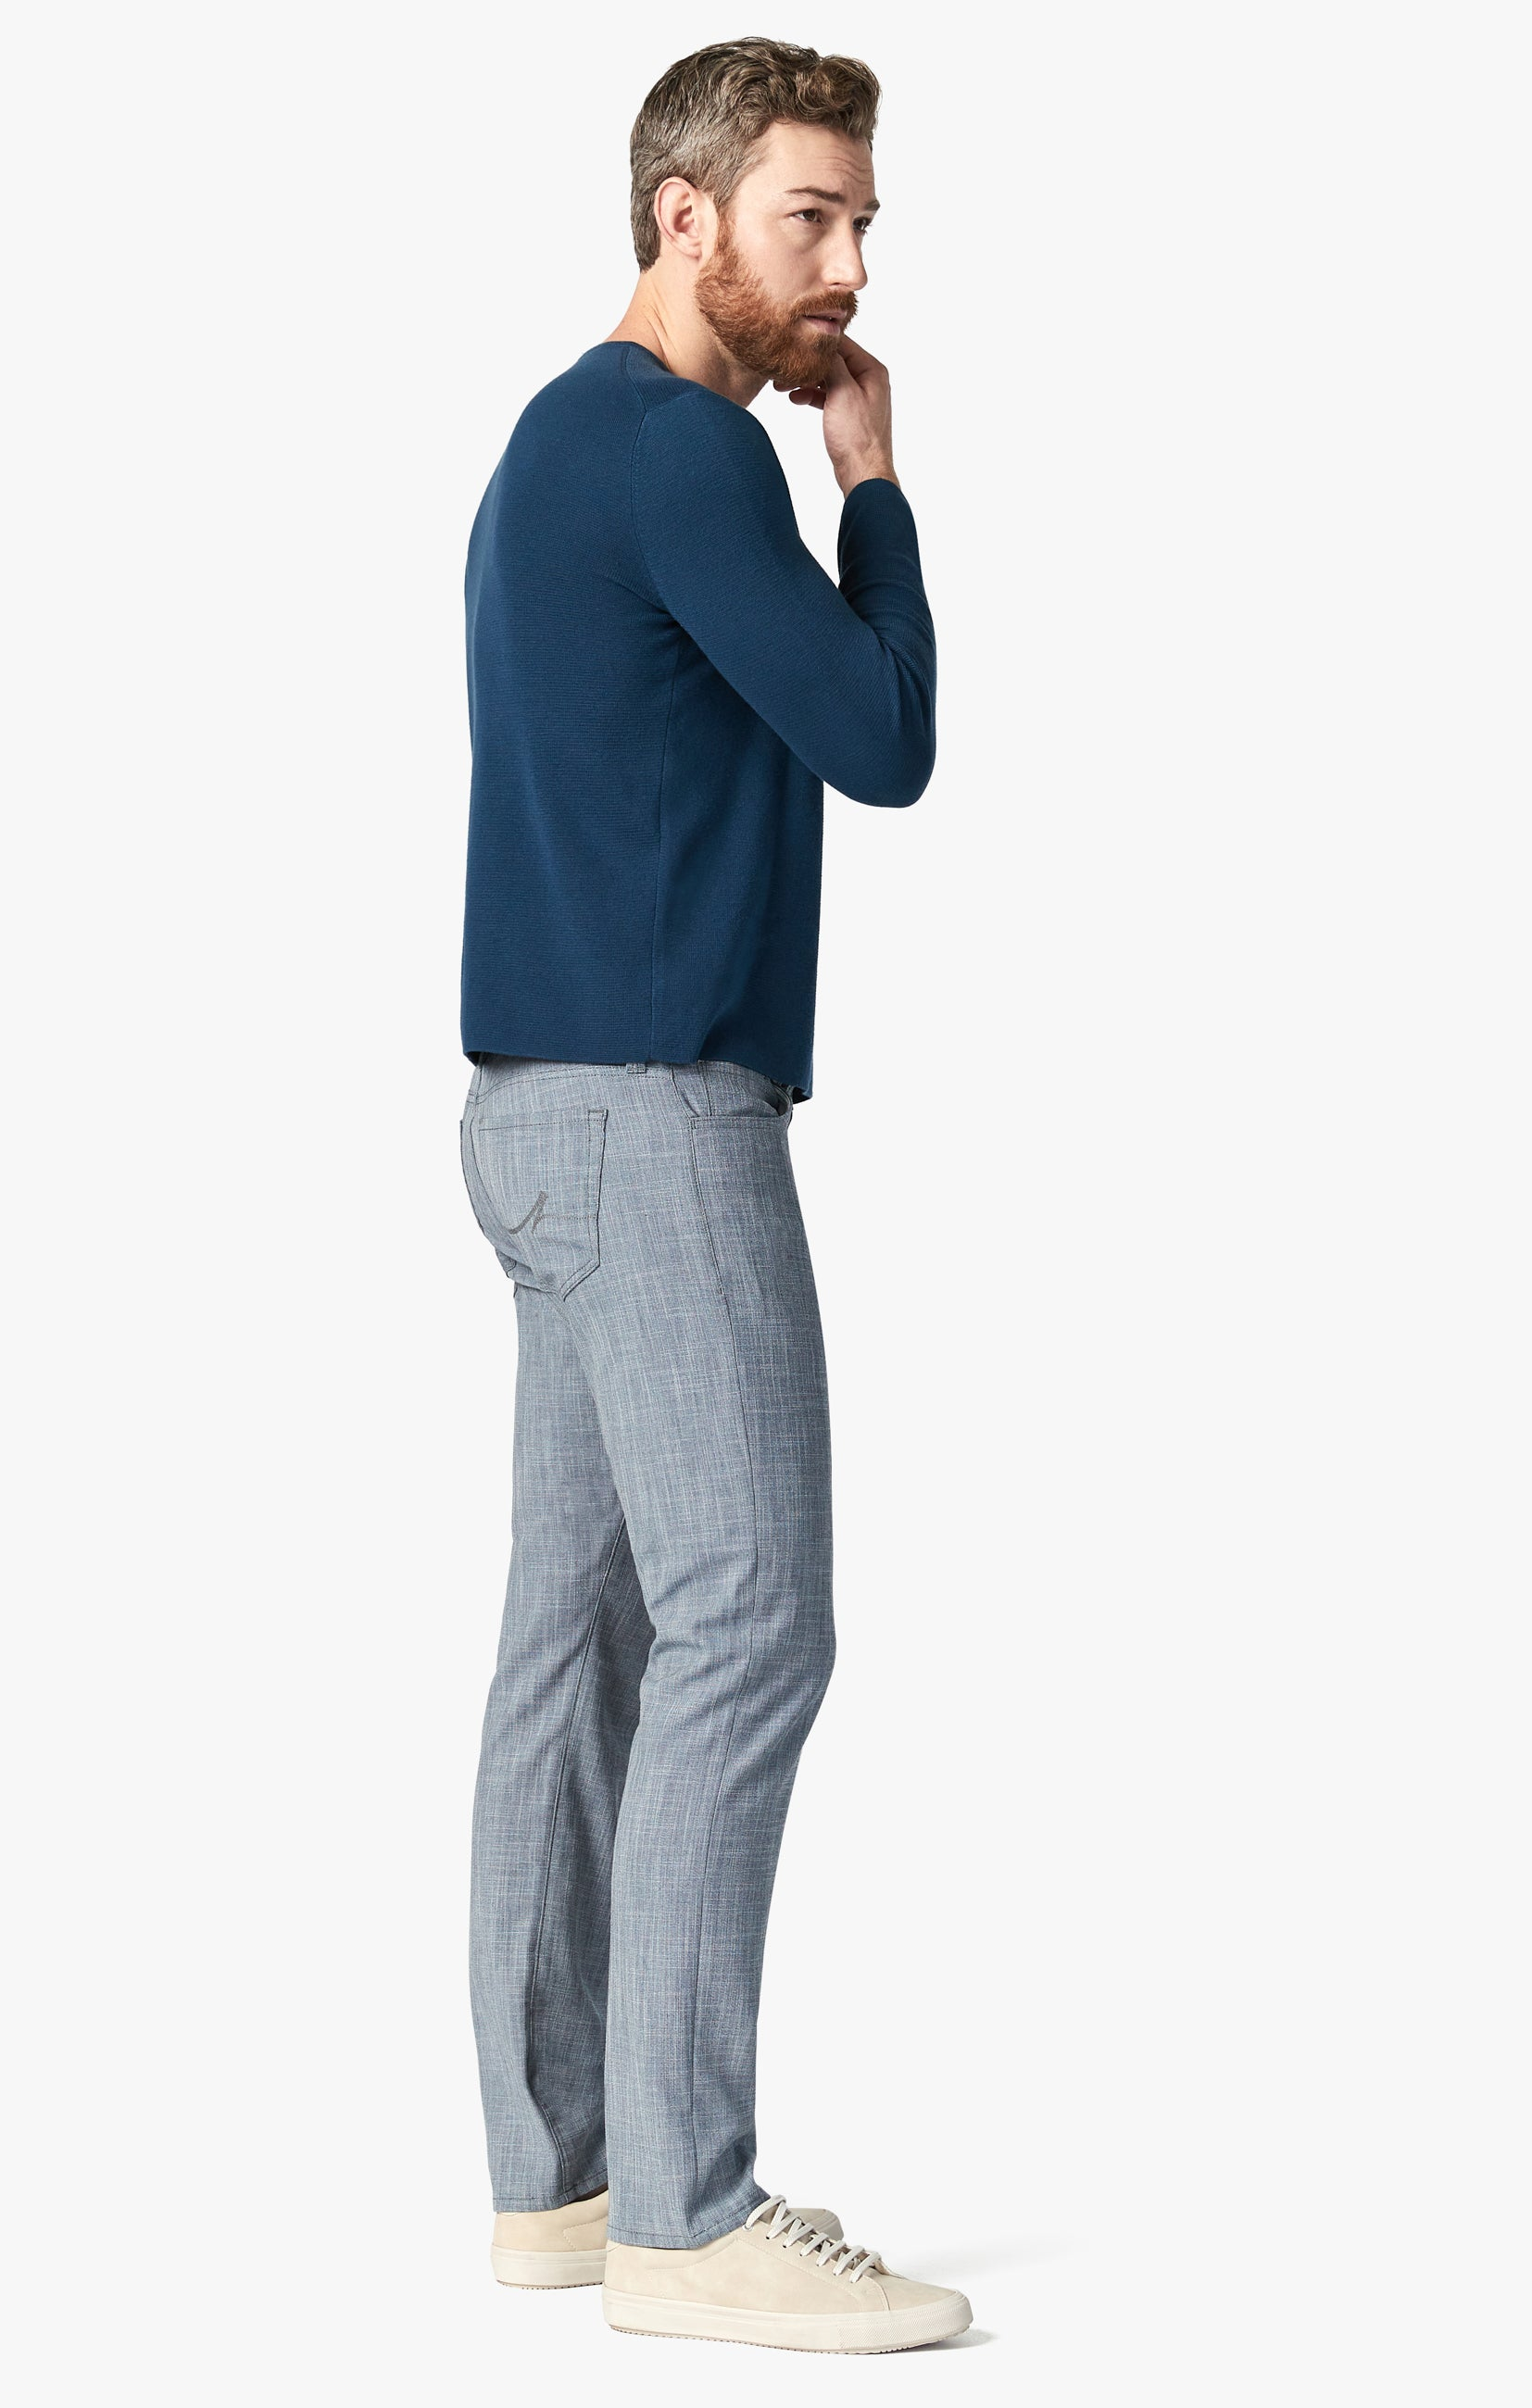 Courage Straight Leg Pants In Grey Cross Twill Image 2